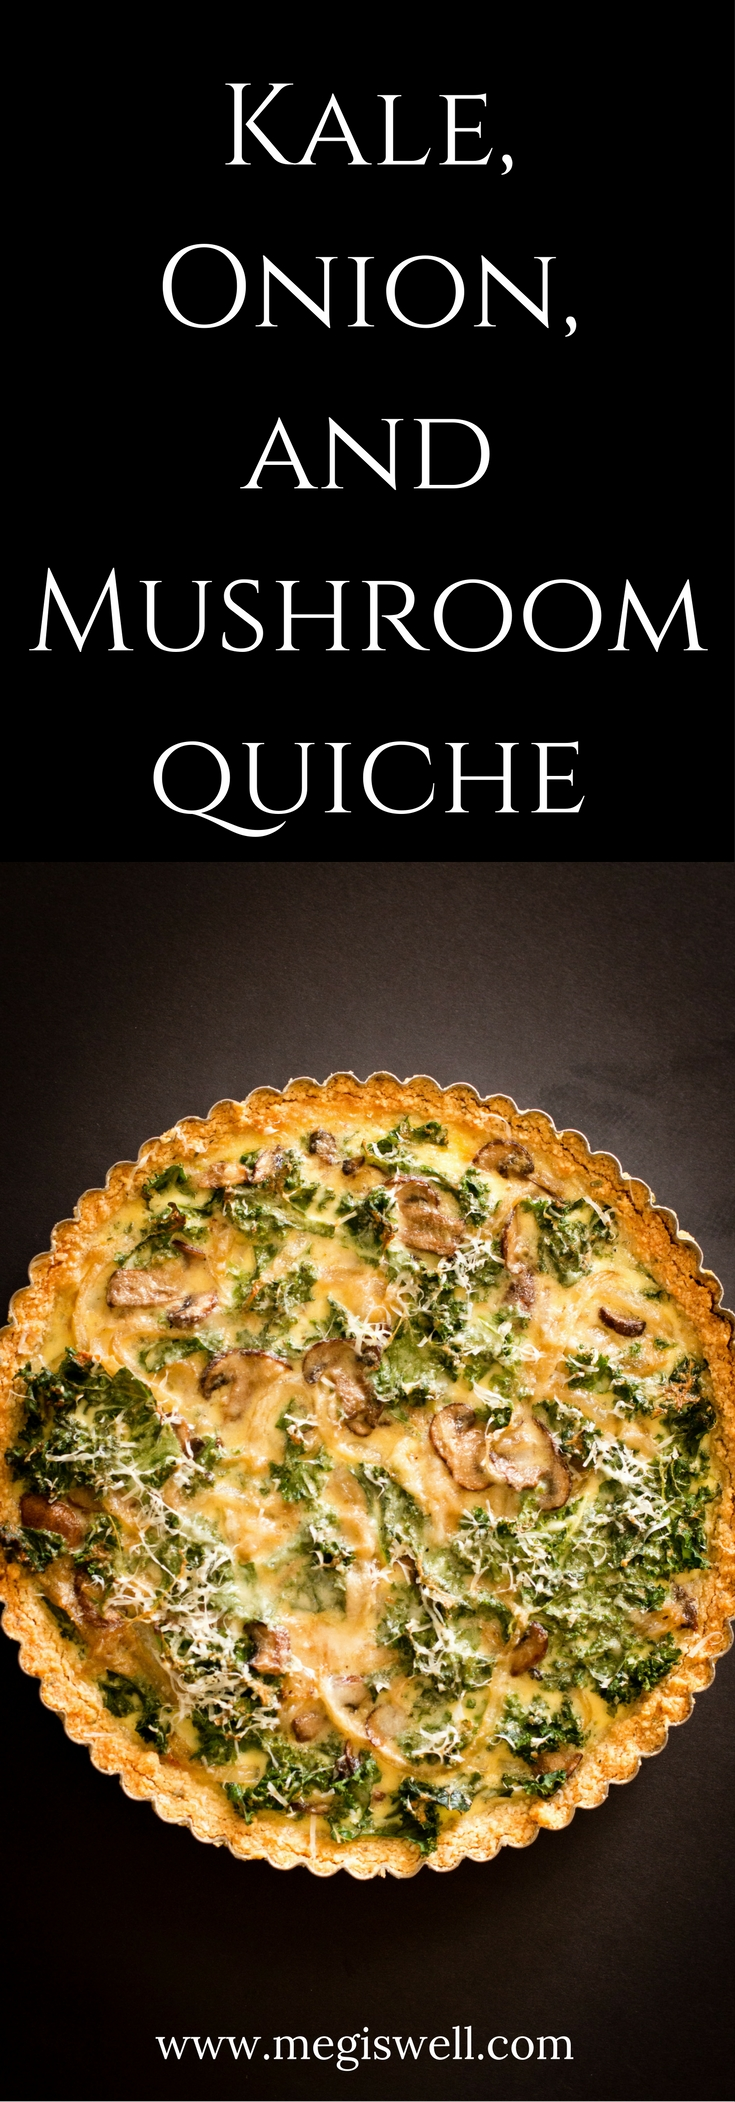 Sautéed mushrooms, onions, and French cream make this Kale, Onion, and Mushroom Quiche creamy while the kale adds a slight crunch and a crumbly almond flour crust melts in your mouth. Perfect for breakfast, brunch, lunch, and dinner!   www.megiswell.com